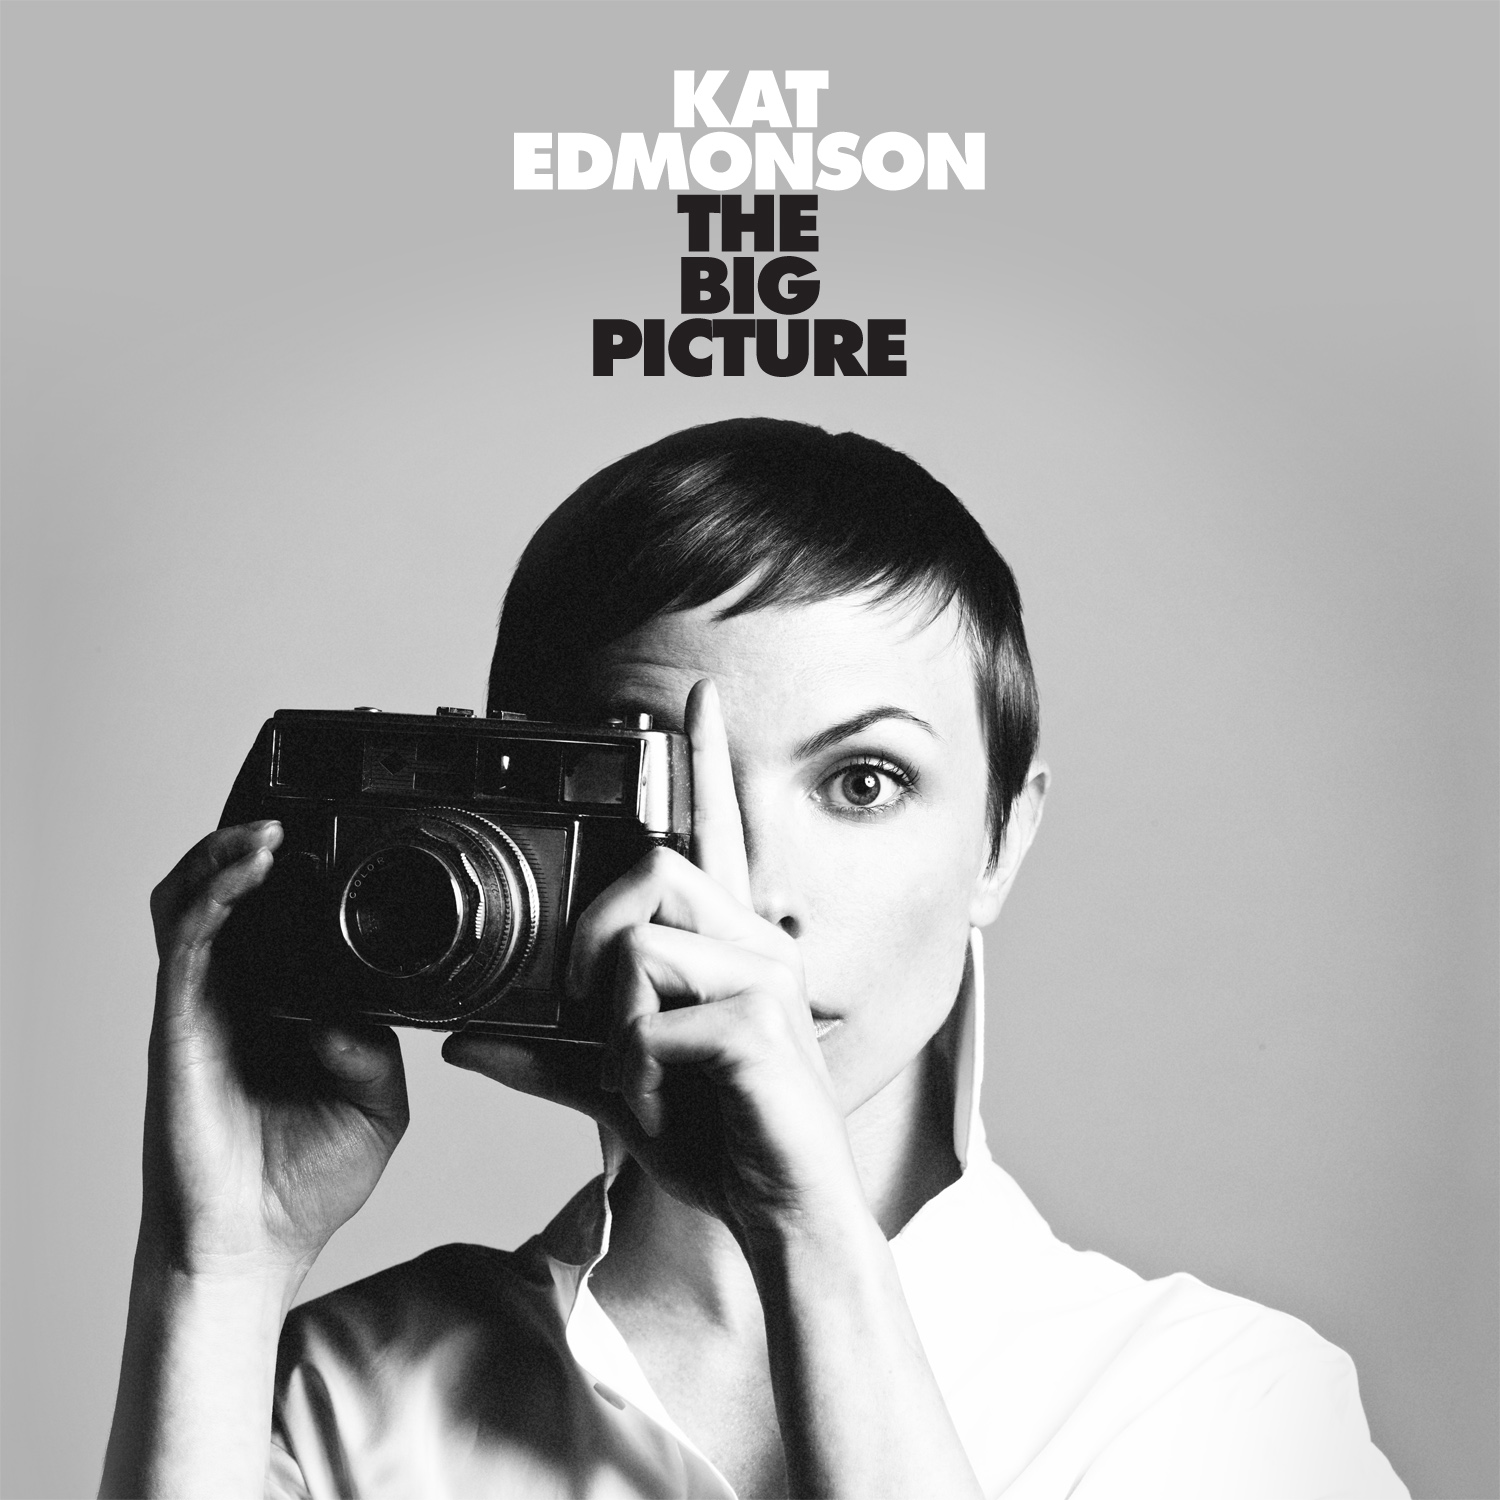 Kat_Edmonson_The Big Picture